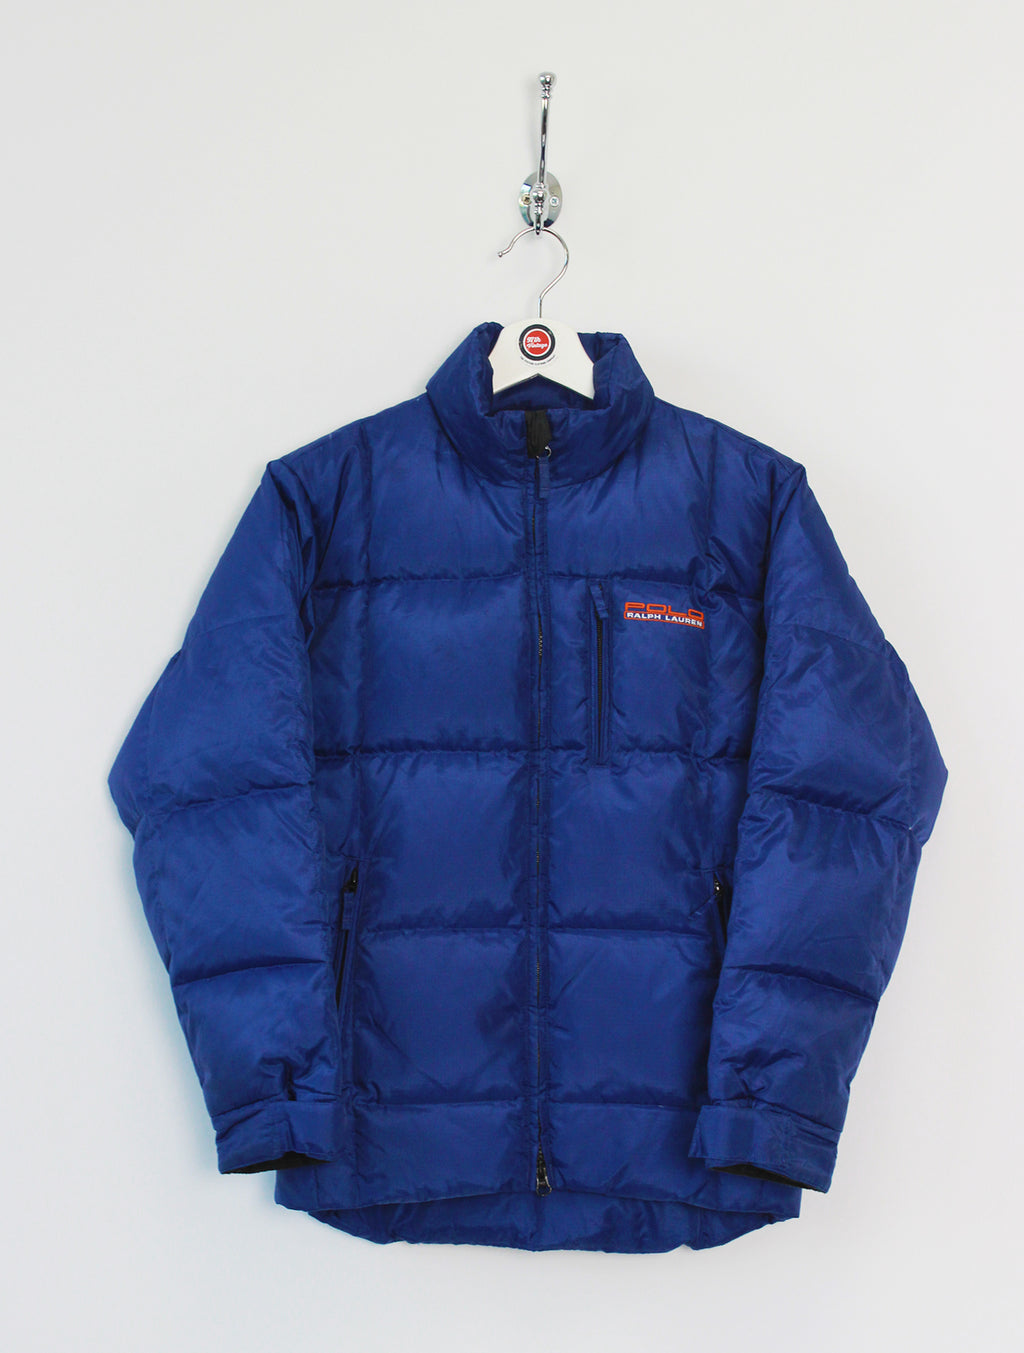 Ralph Lauren Polo Puffer Coat (M)